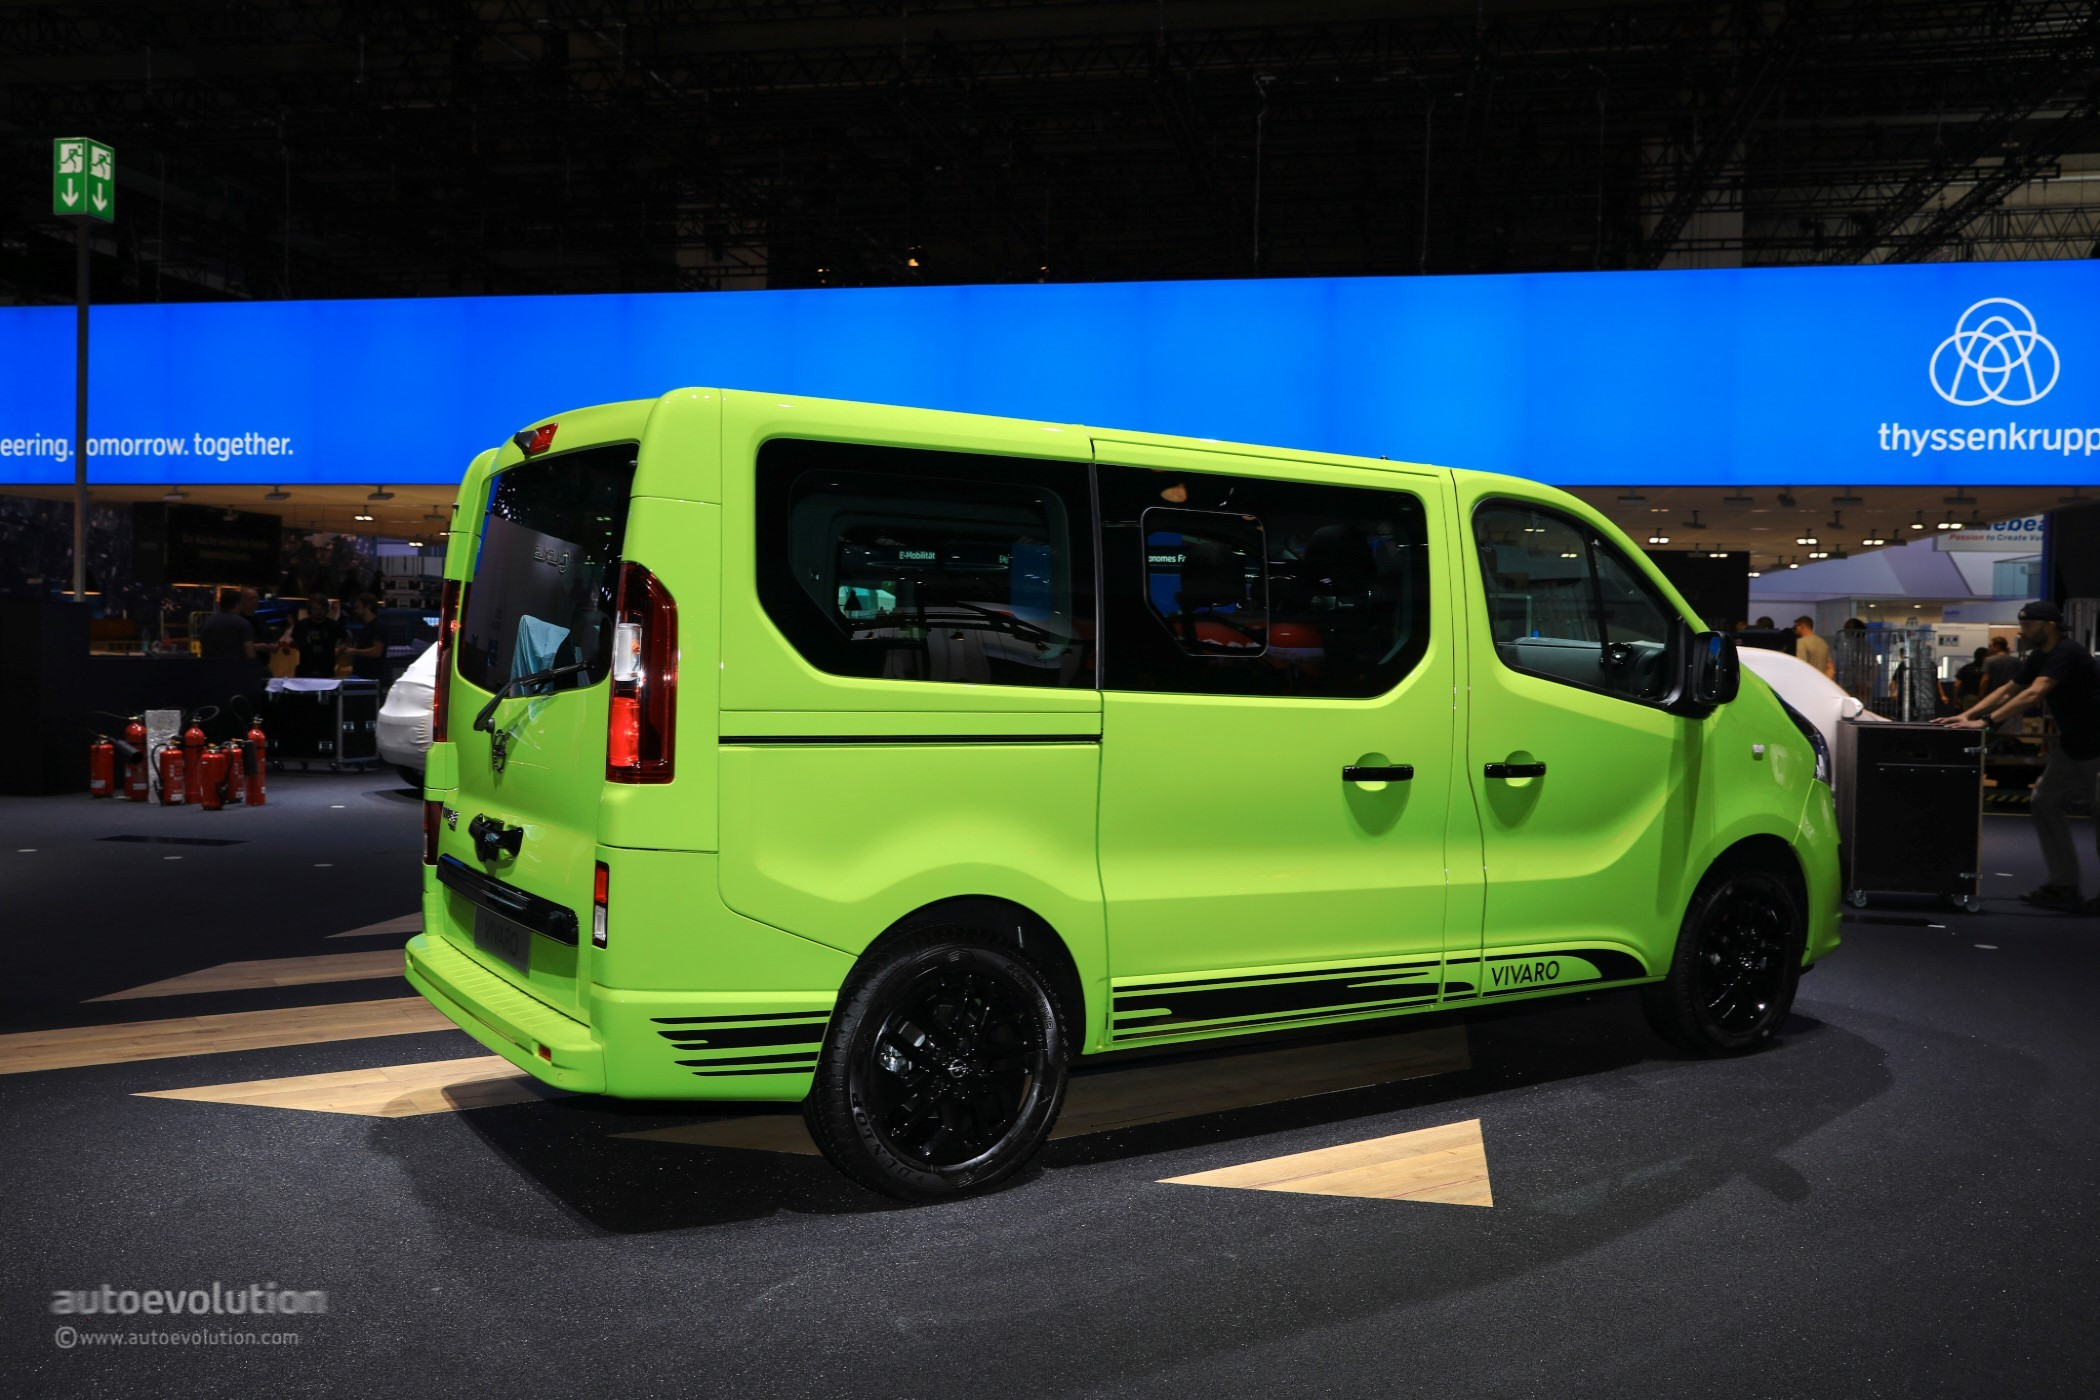 opel vivaro life makes camper vans look cool in frankfurt